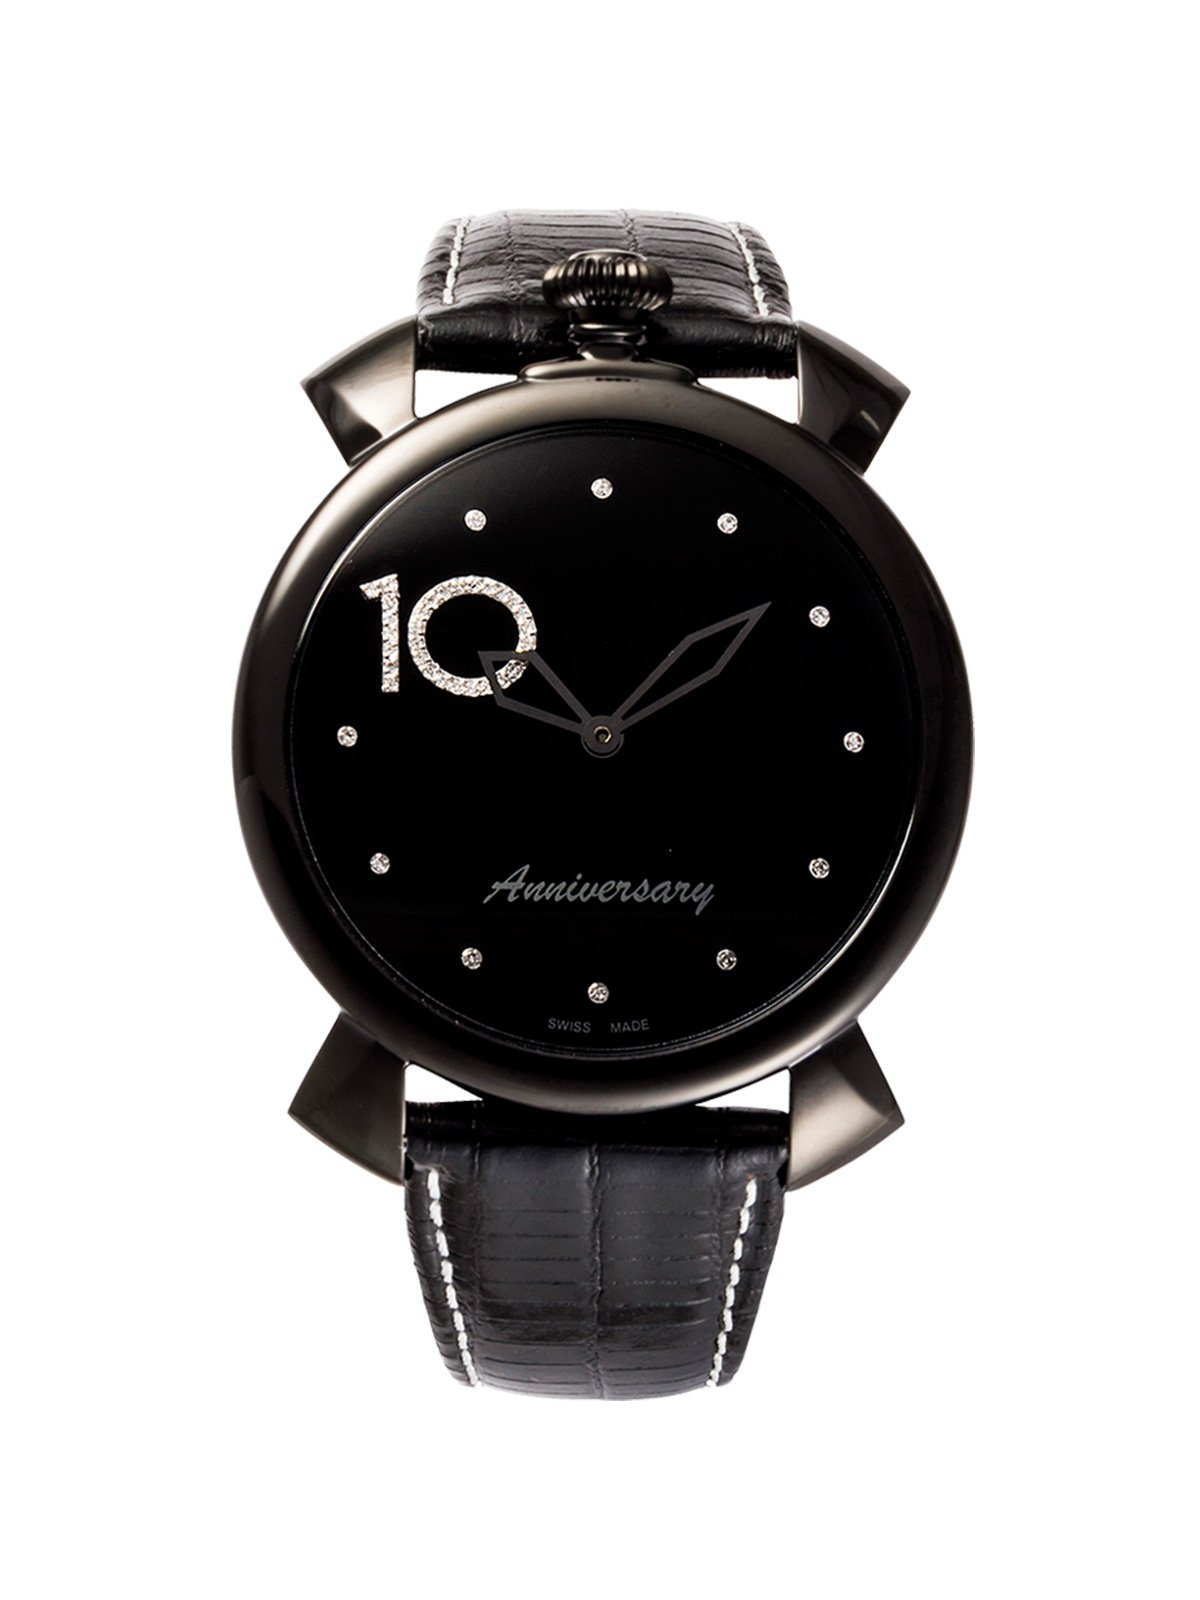 GaGà Milano Thin 46MM Black PVD Diamond Limited Edition - Watches & Crystals